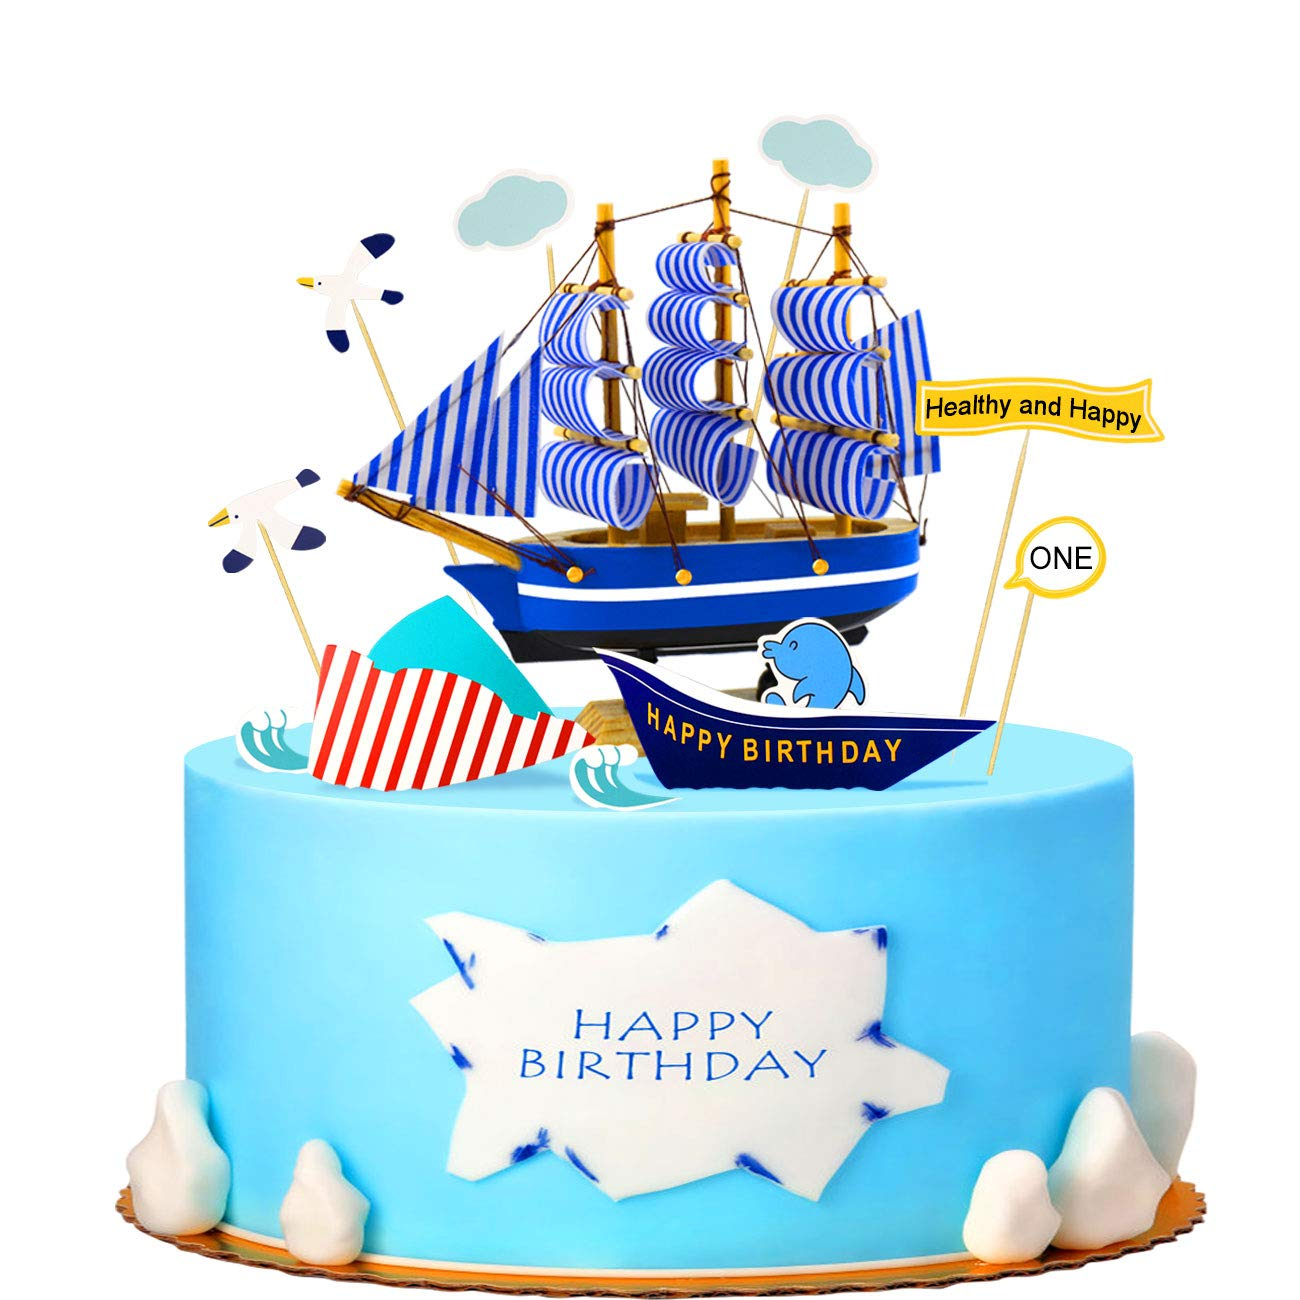 Fantastic Busoha Nautical Theme Birthday Cake Toppers Wooden Handcrafted Personalised Birthday Cards Sponlily Jamesorg